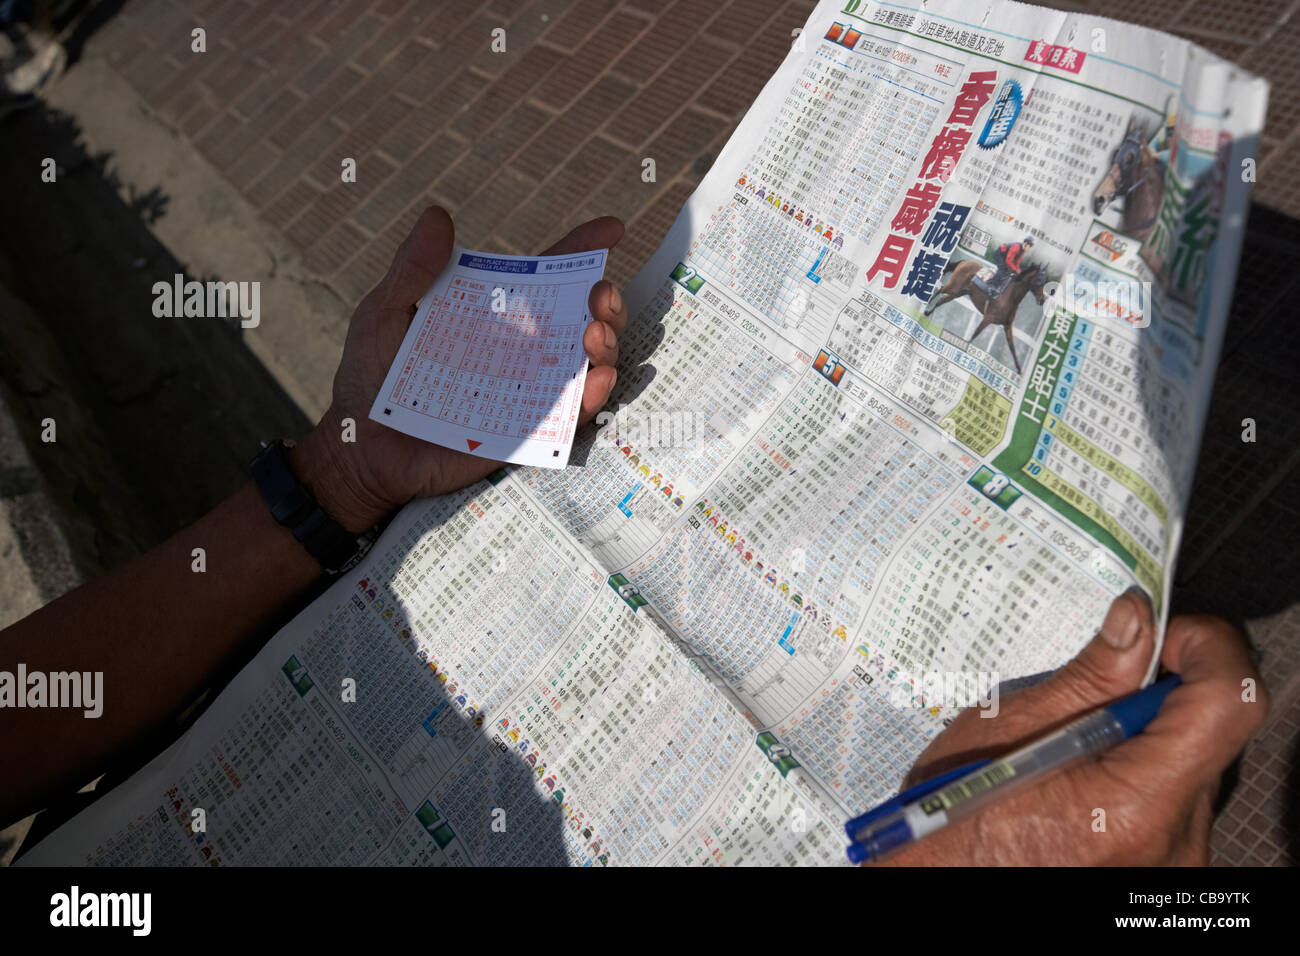 chinese man with betting slip and newspaper with horse